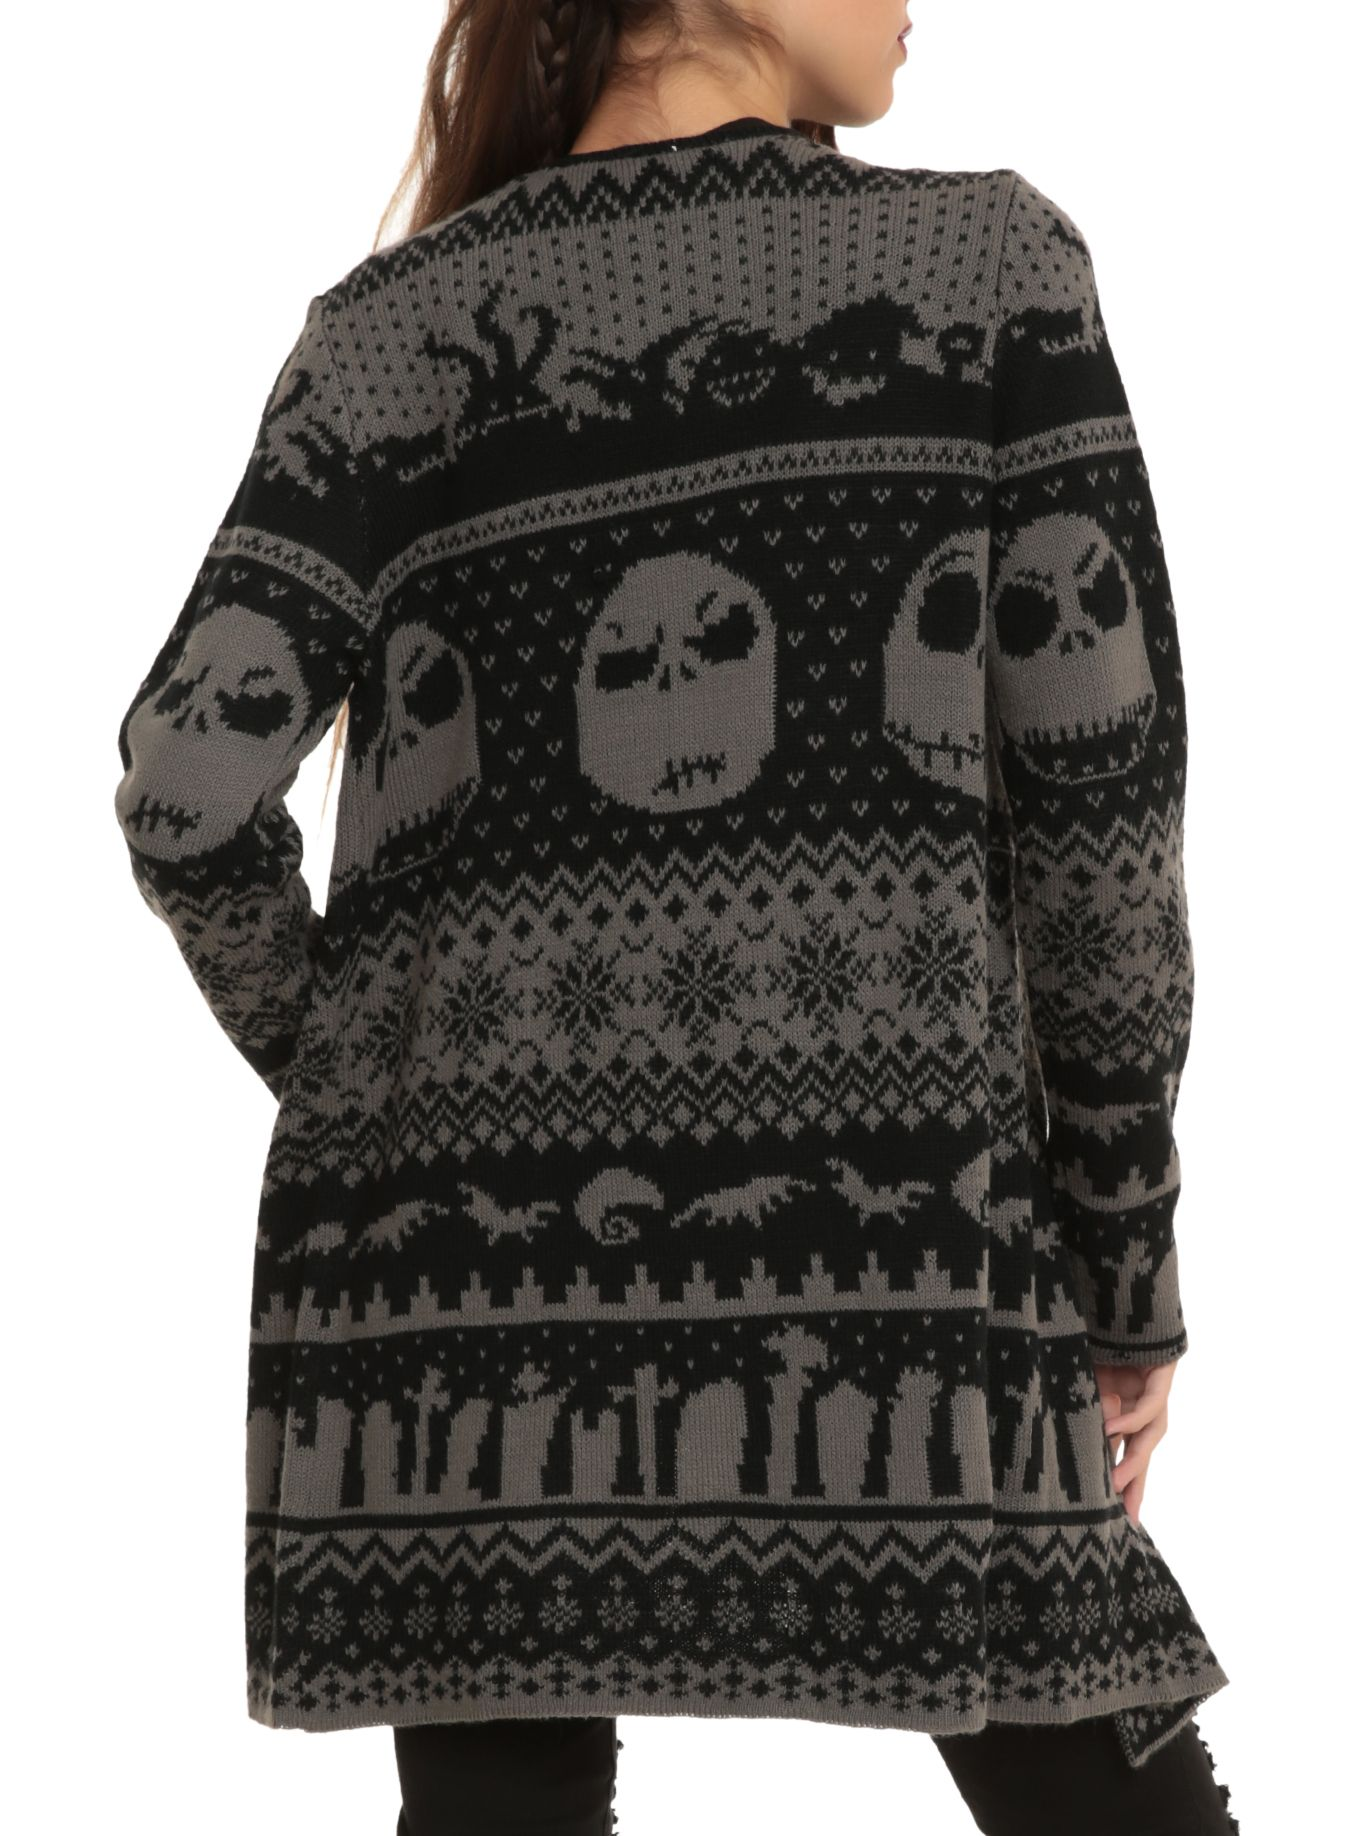 The Nightmare Before Christmas Black Grey Cardigan | Hot Topic ...